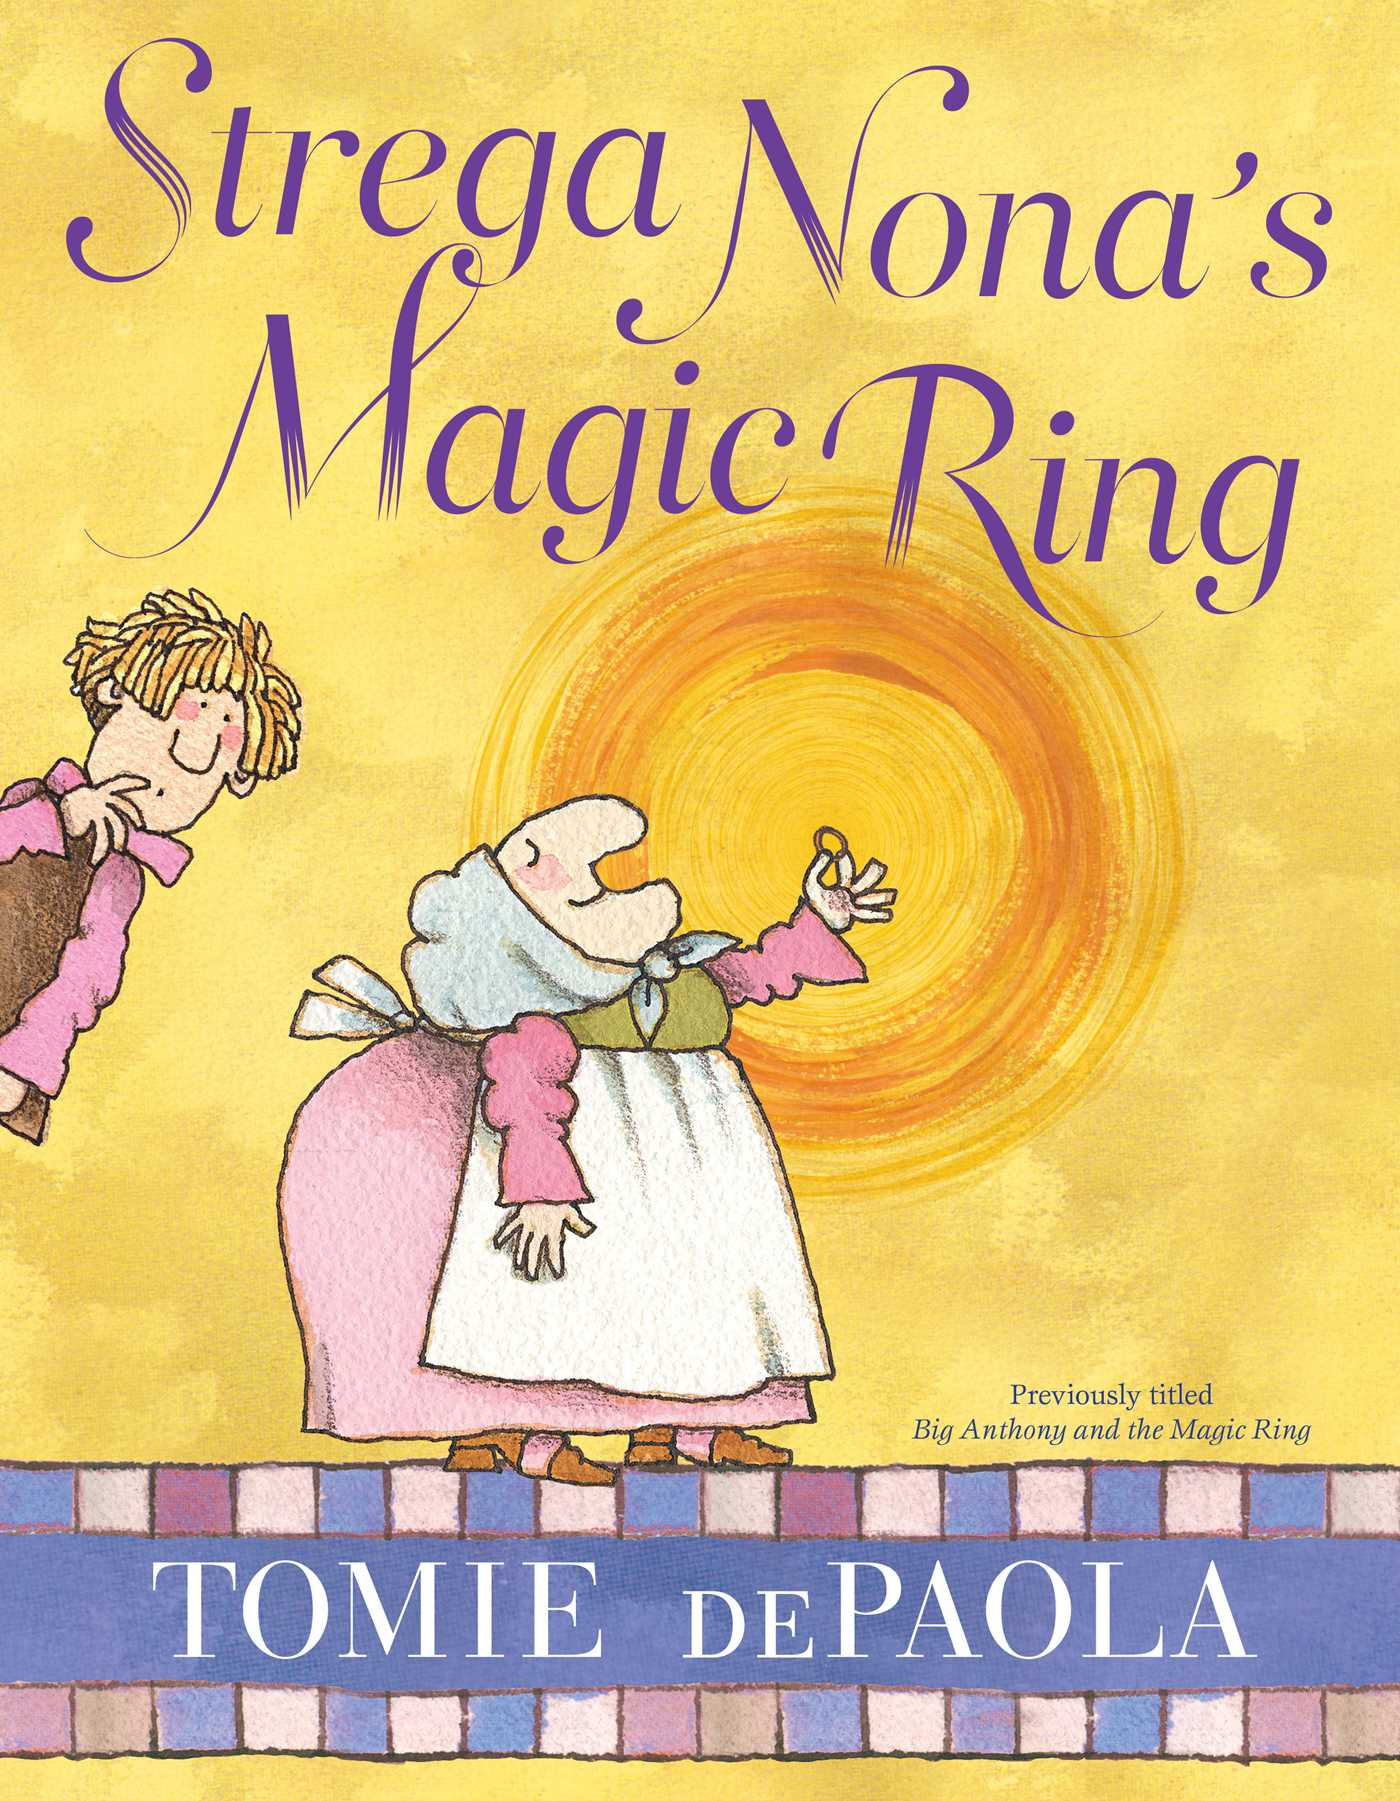 Strega nonas magic ring 9781481477611 hr